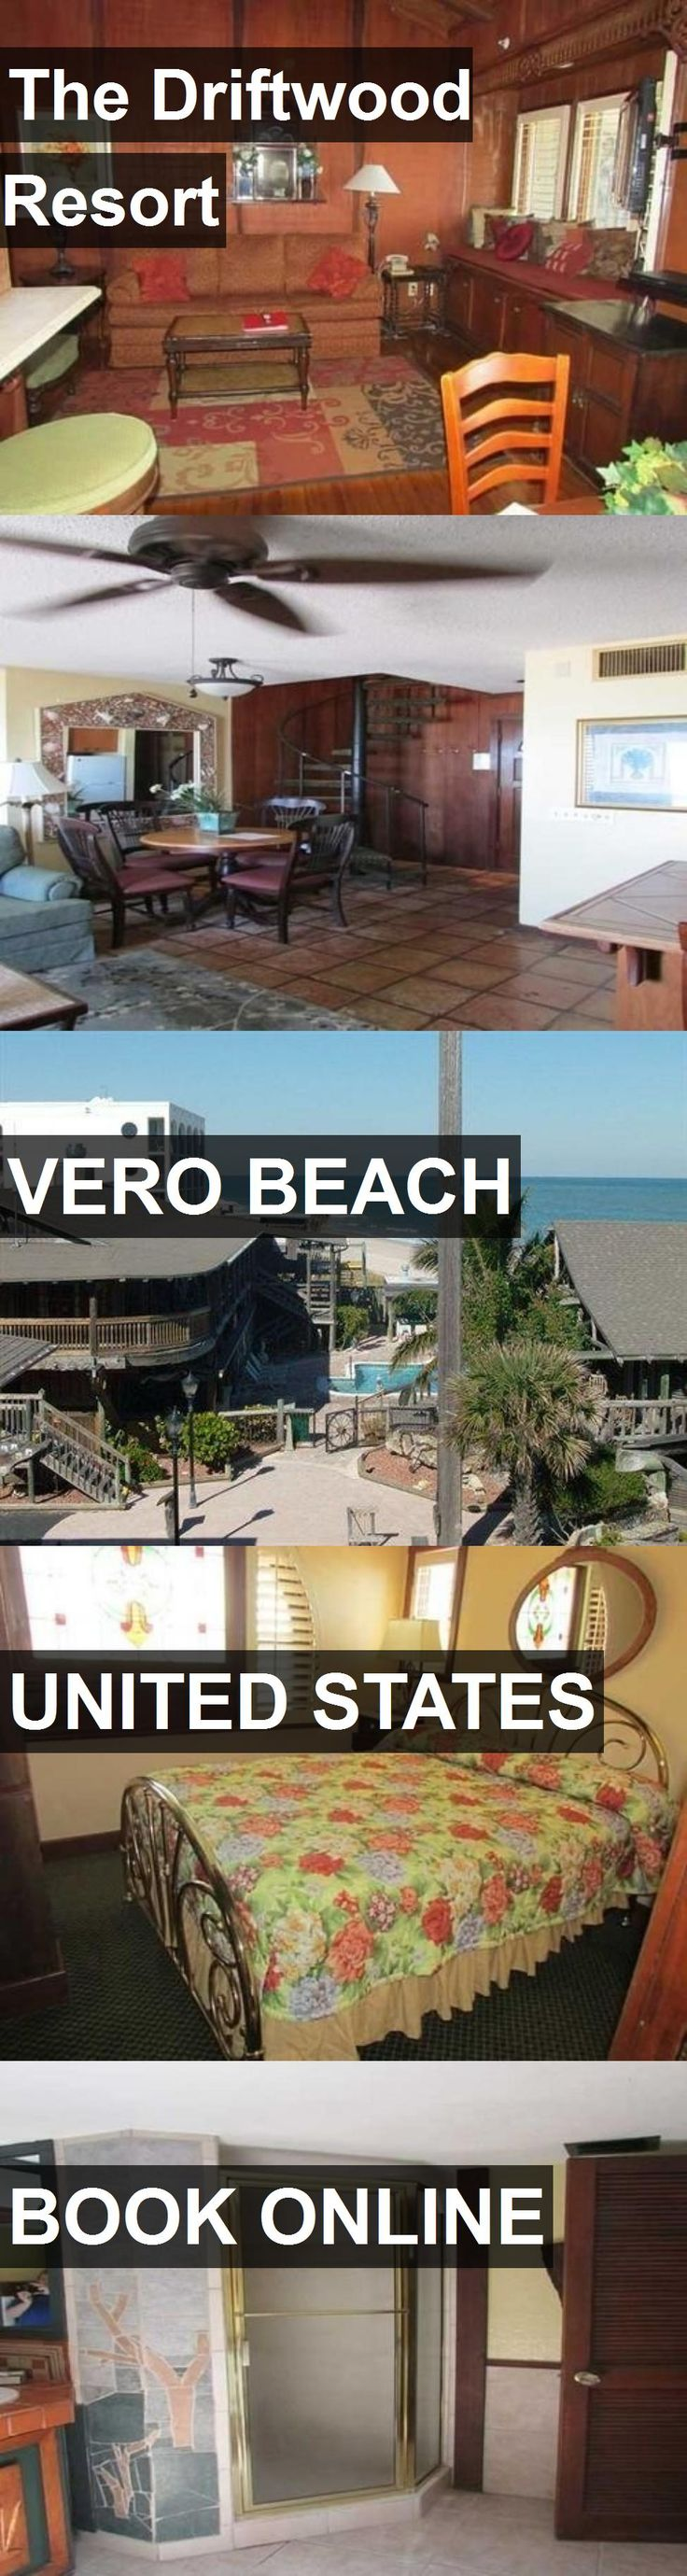 Hotel The Driftwood Resort in Vero Beach, United States. For more information, photos, reviews and best prices please follow the link. #UnitedStates #VeroBeach #travel #vacation #hotel